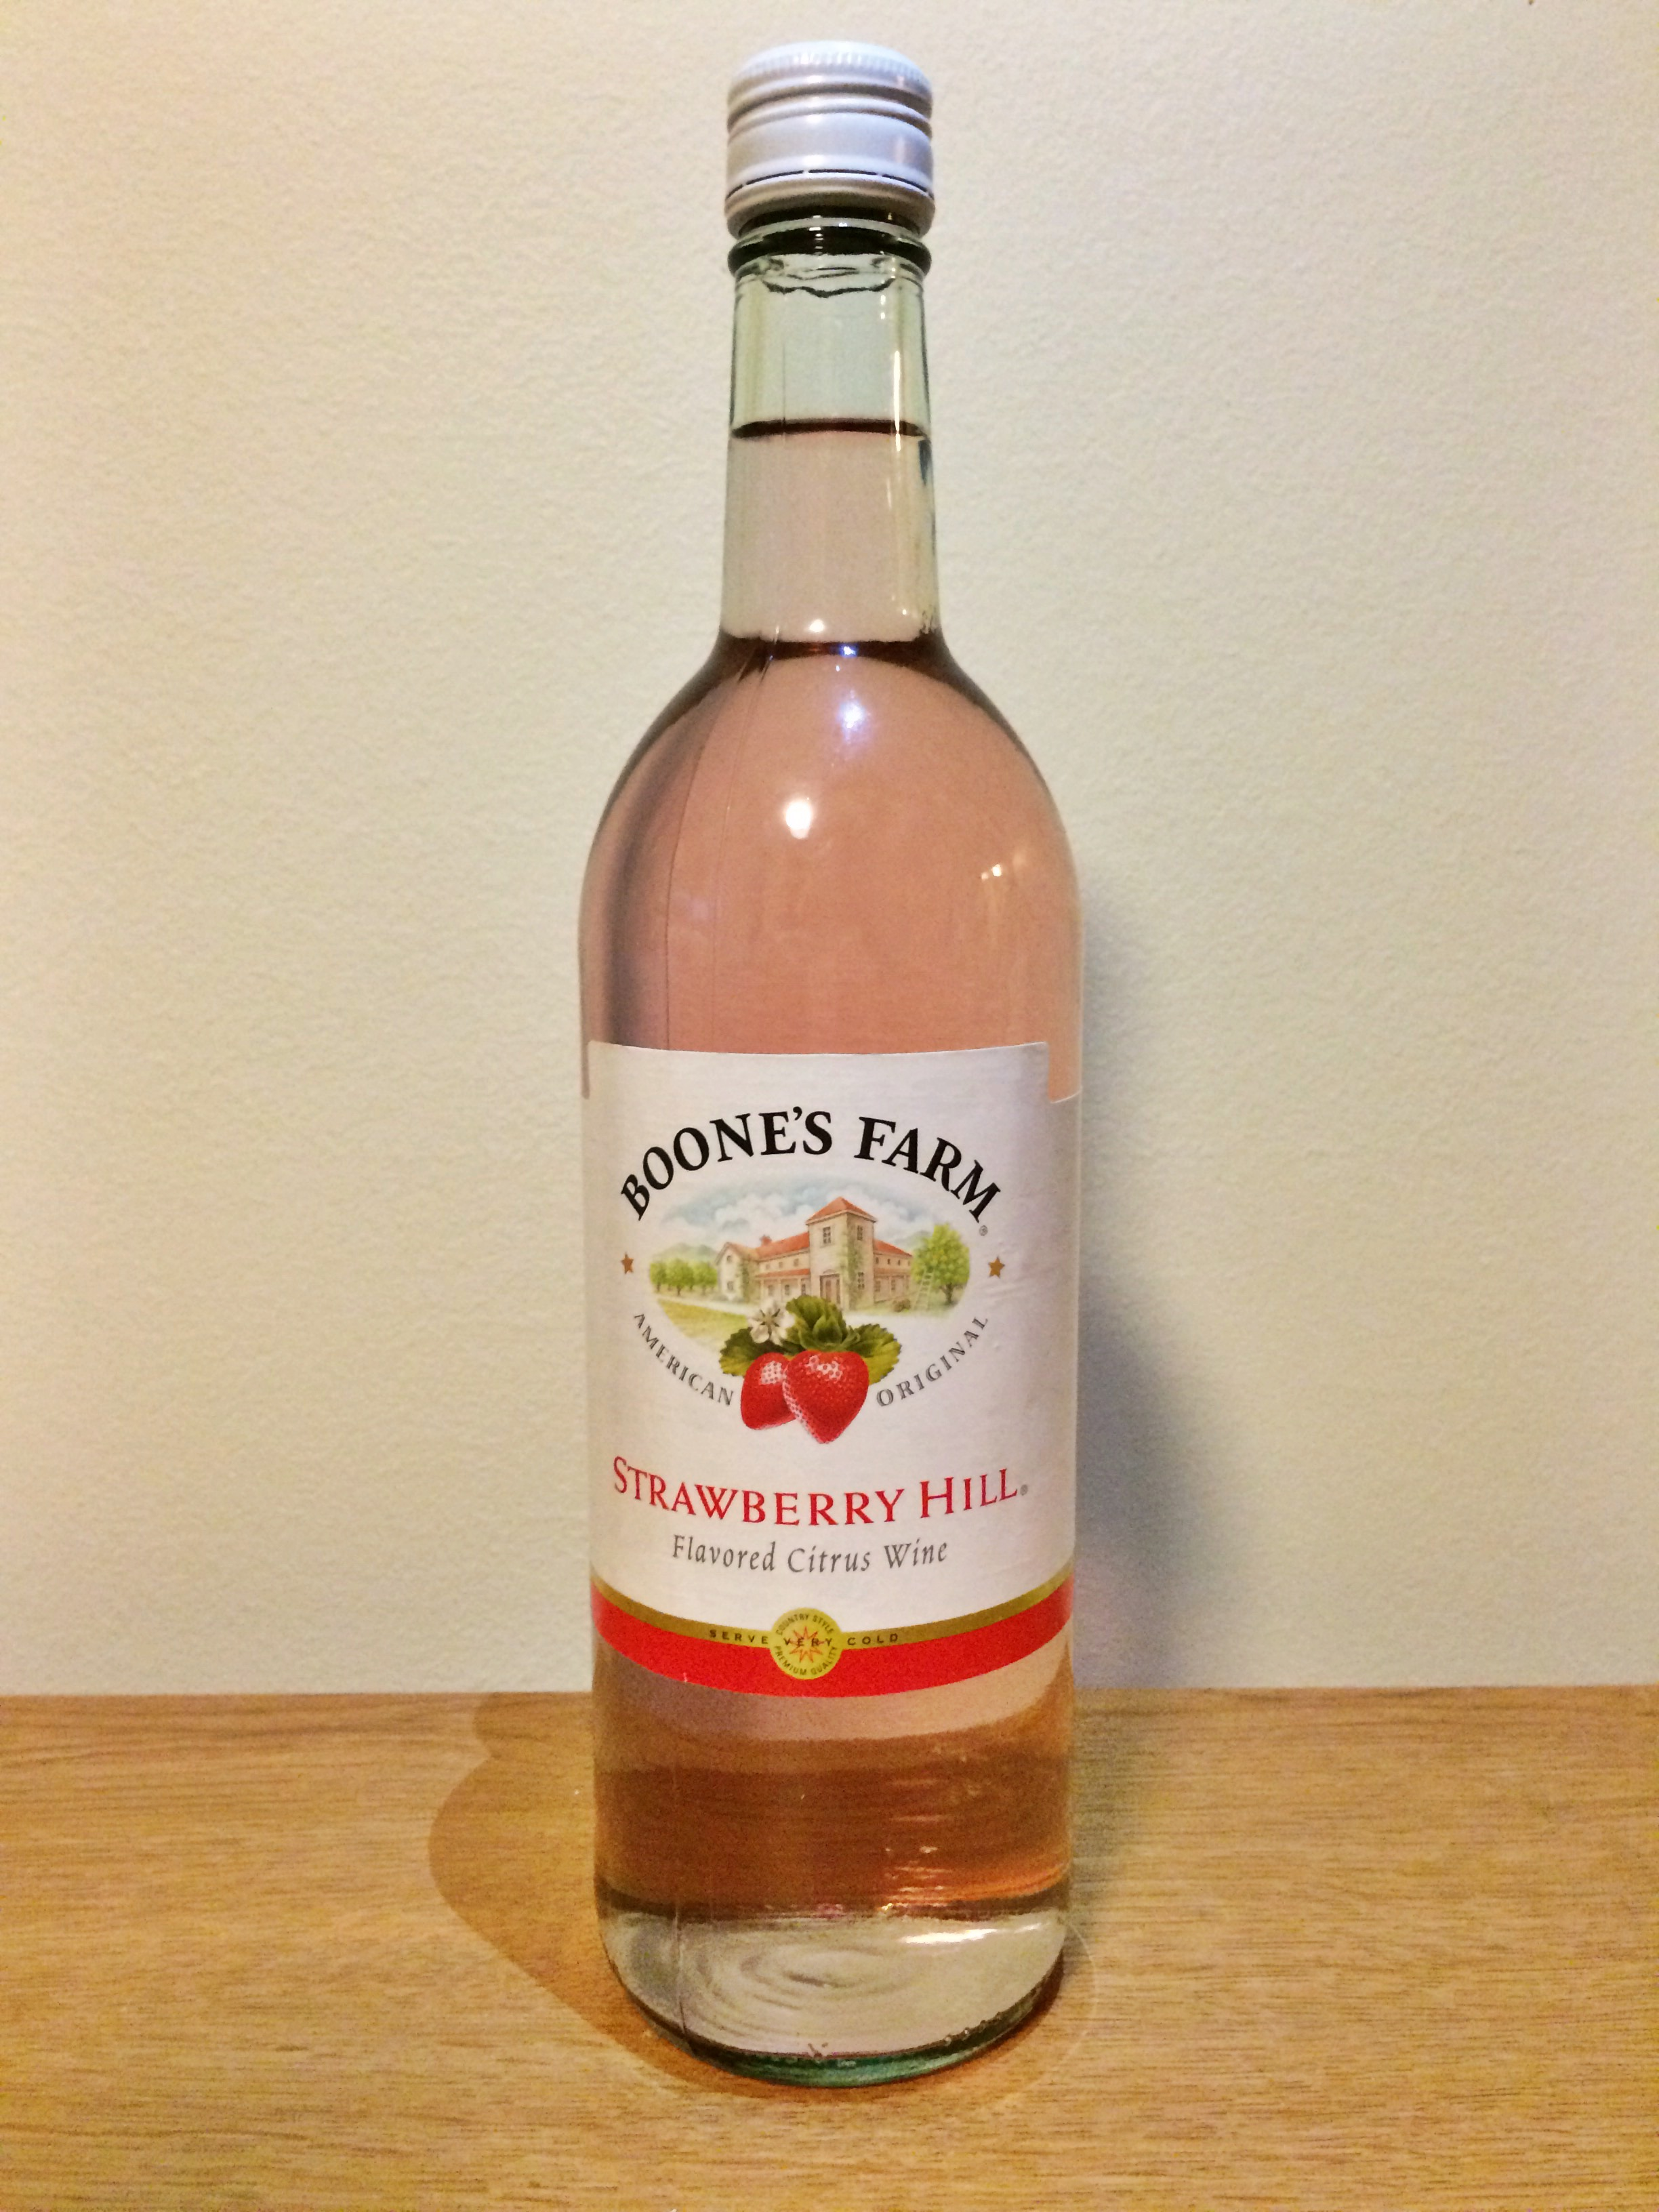 boones farm wine in spain essay Boones farm strawberry hill $399 product code: 3973 size: 750ml  fruit wine $399 qty add to cart -or- checkout with paypal share.